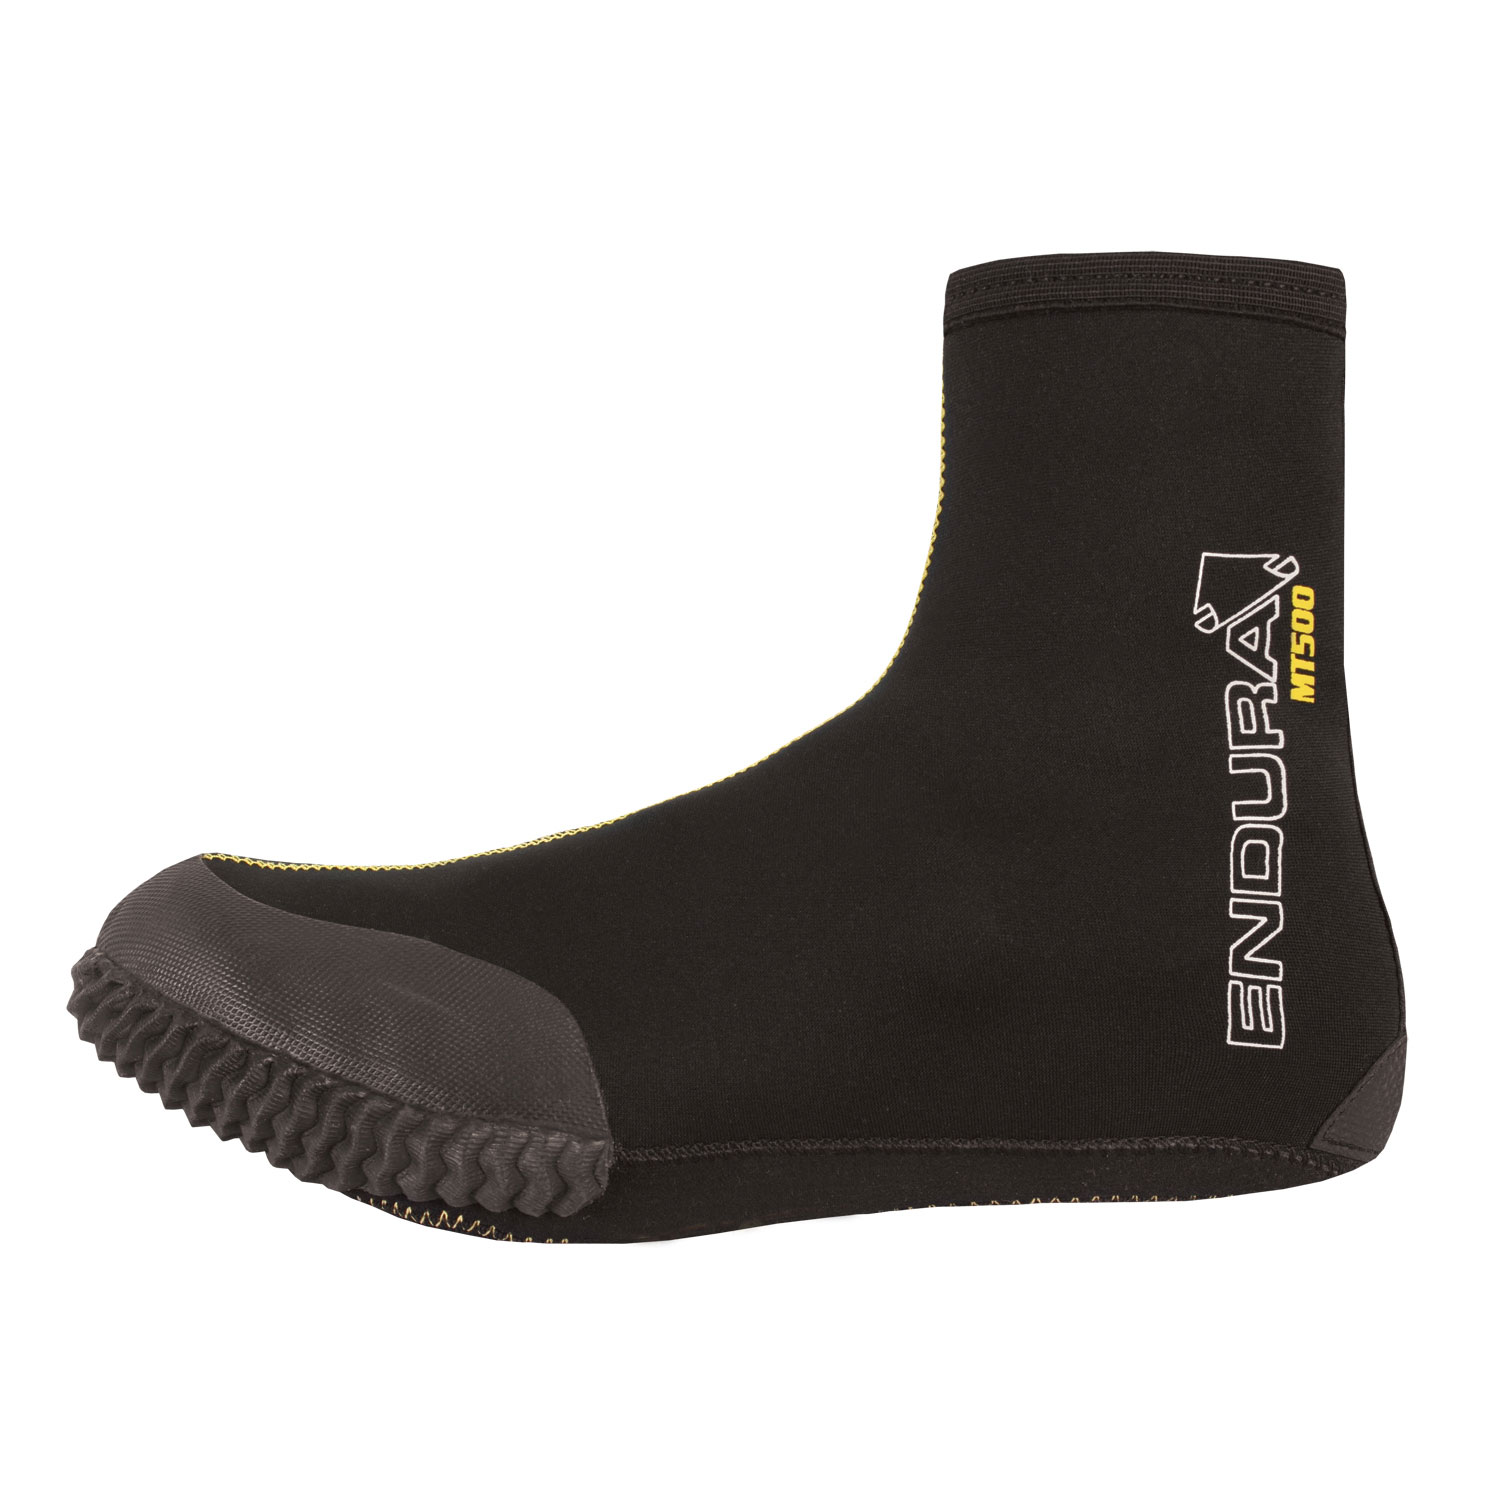 galoŠe endura mt500 overshoe ii black